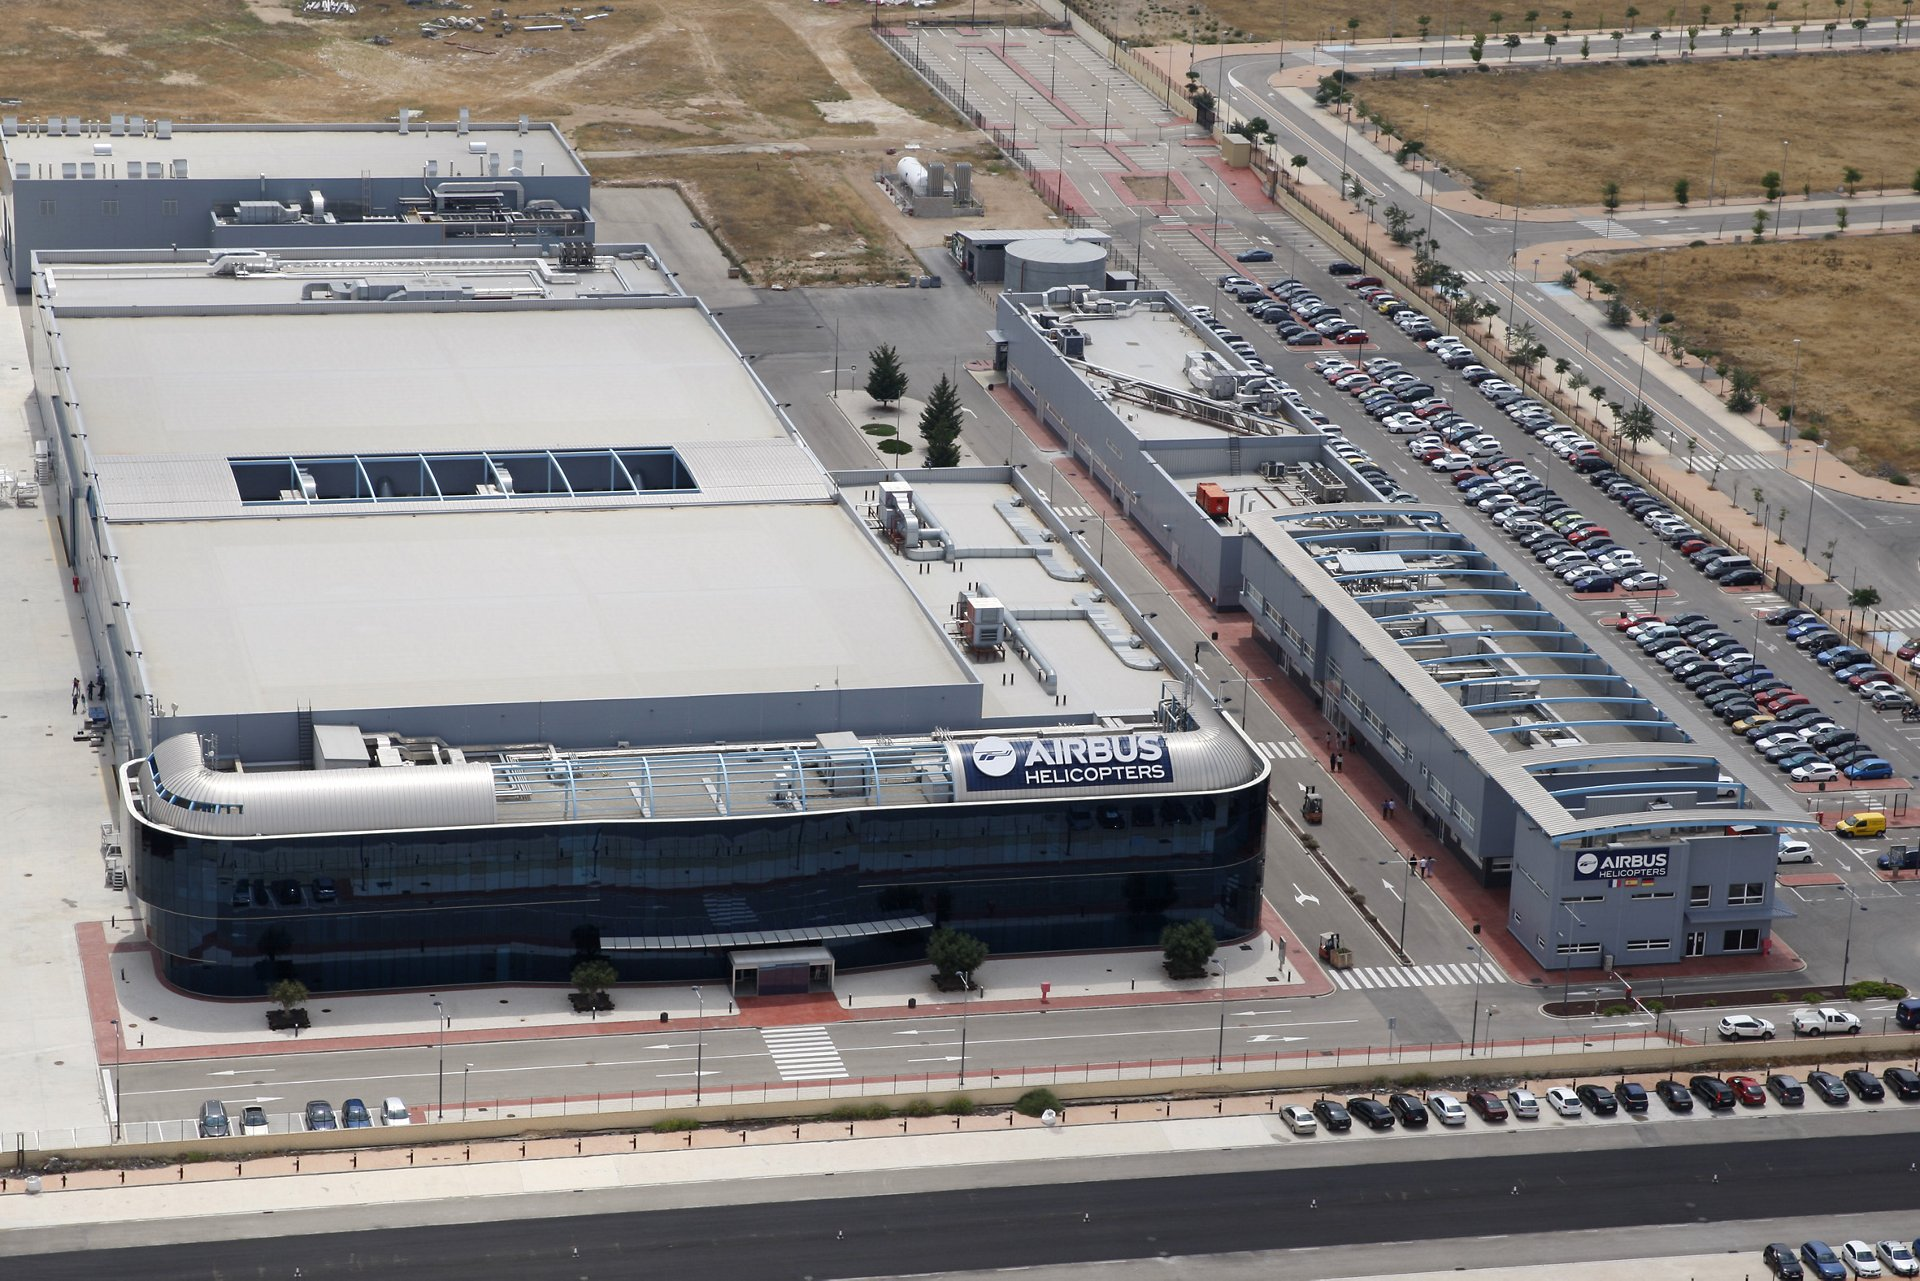 An aerial view of Airbus Helicopters' plant in Albacete, Spain